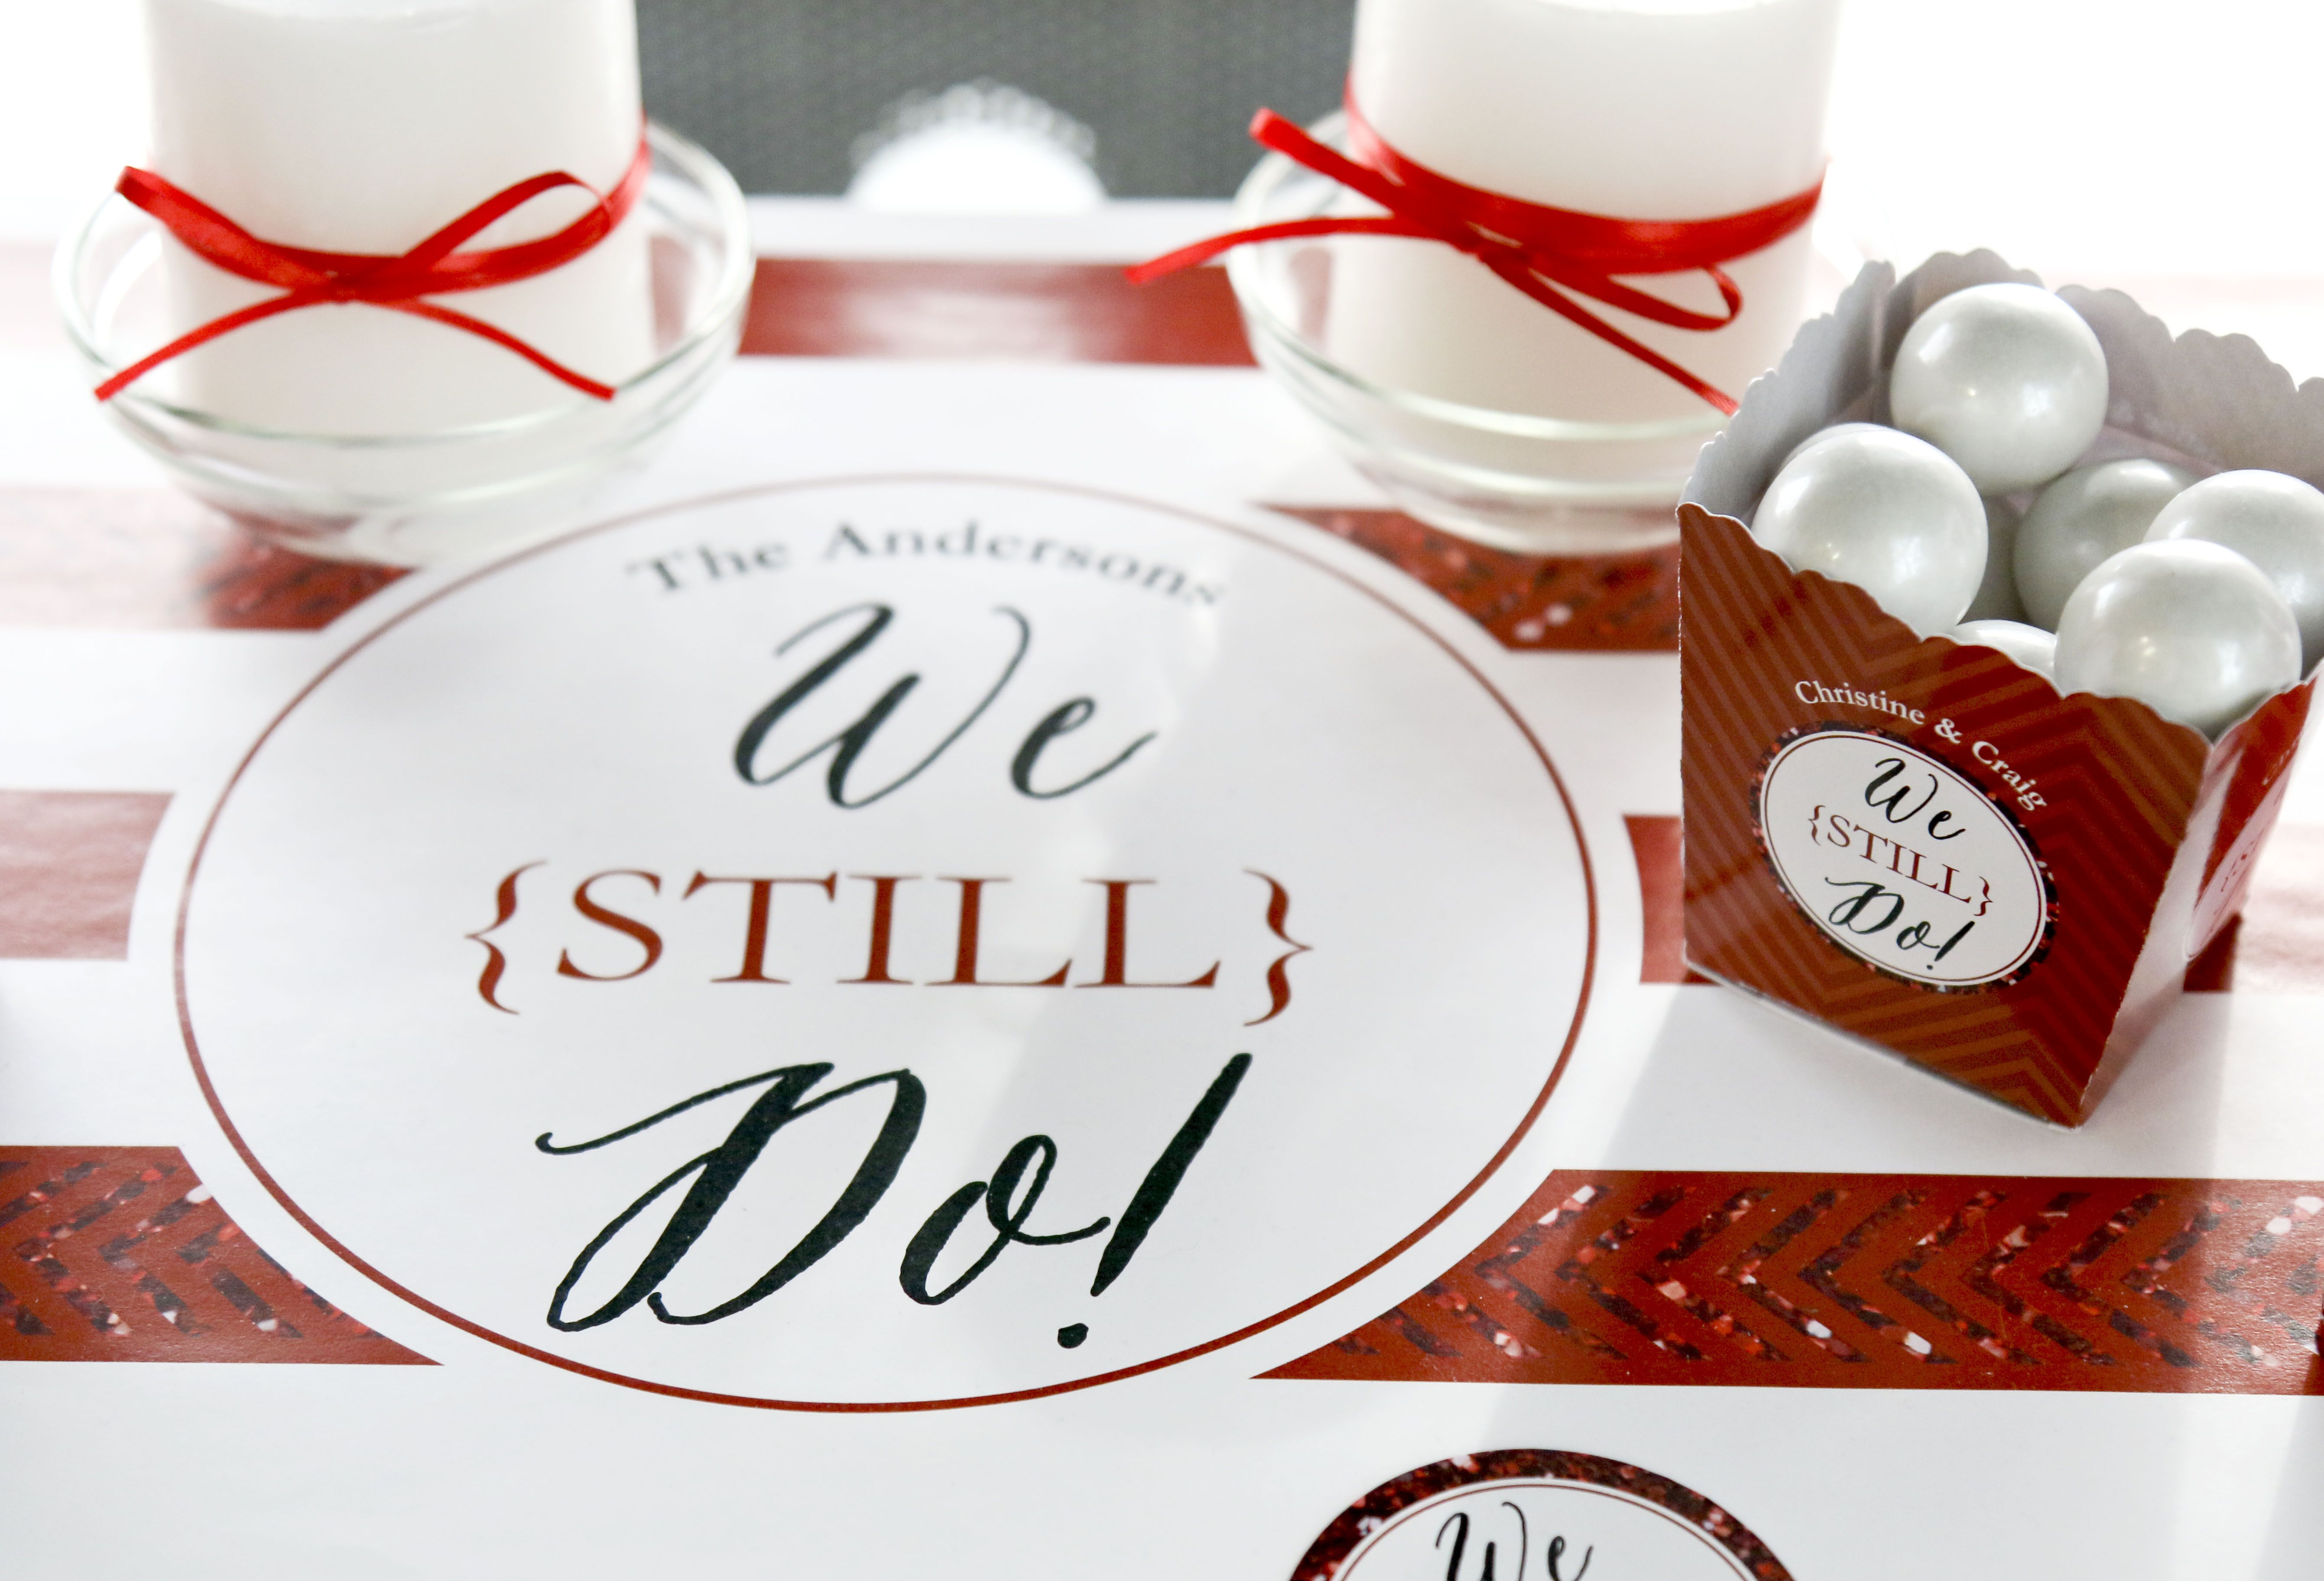 Decoration ideas for 40th wedding anniversary  We Still Do  th Wedding Anniversary  Personalized Anniversary